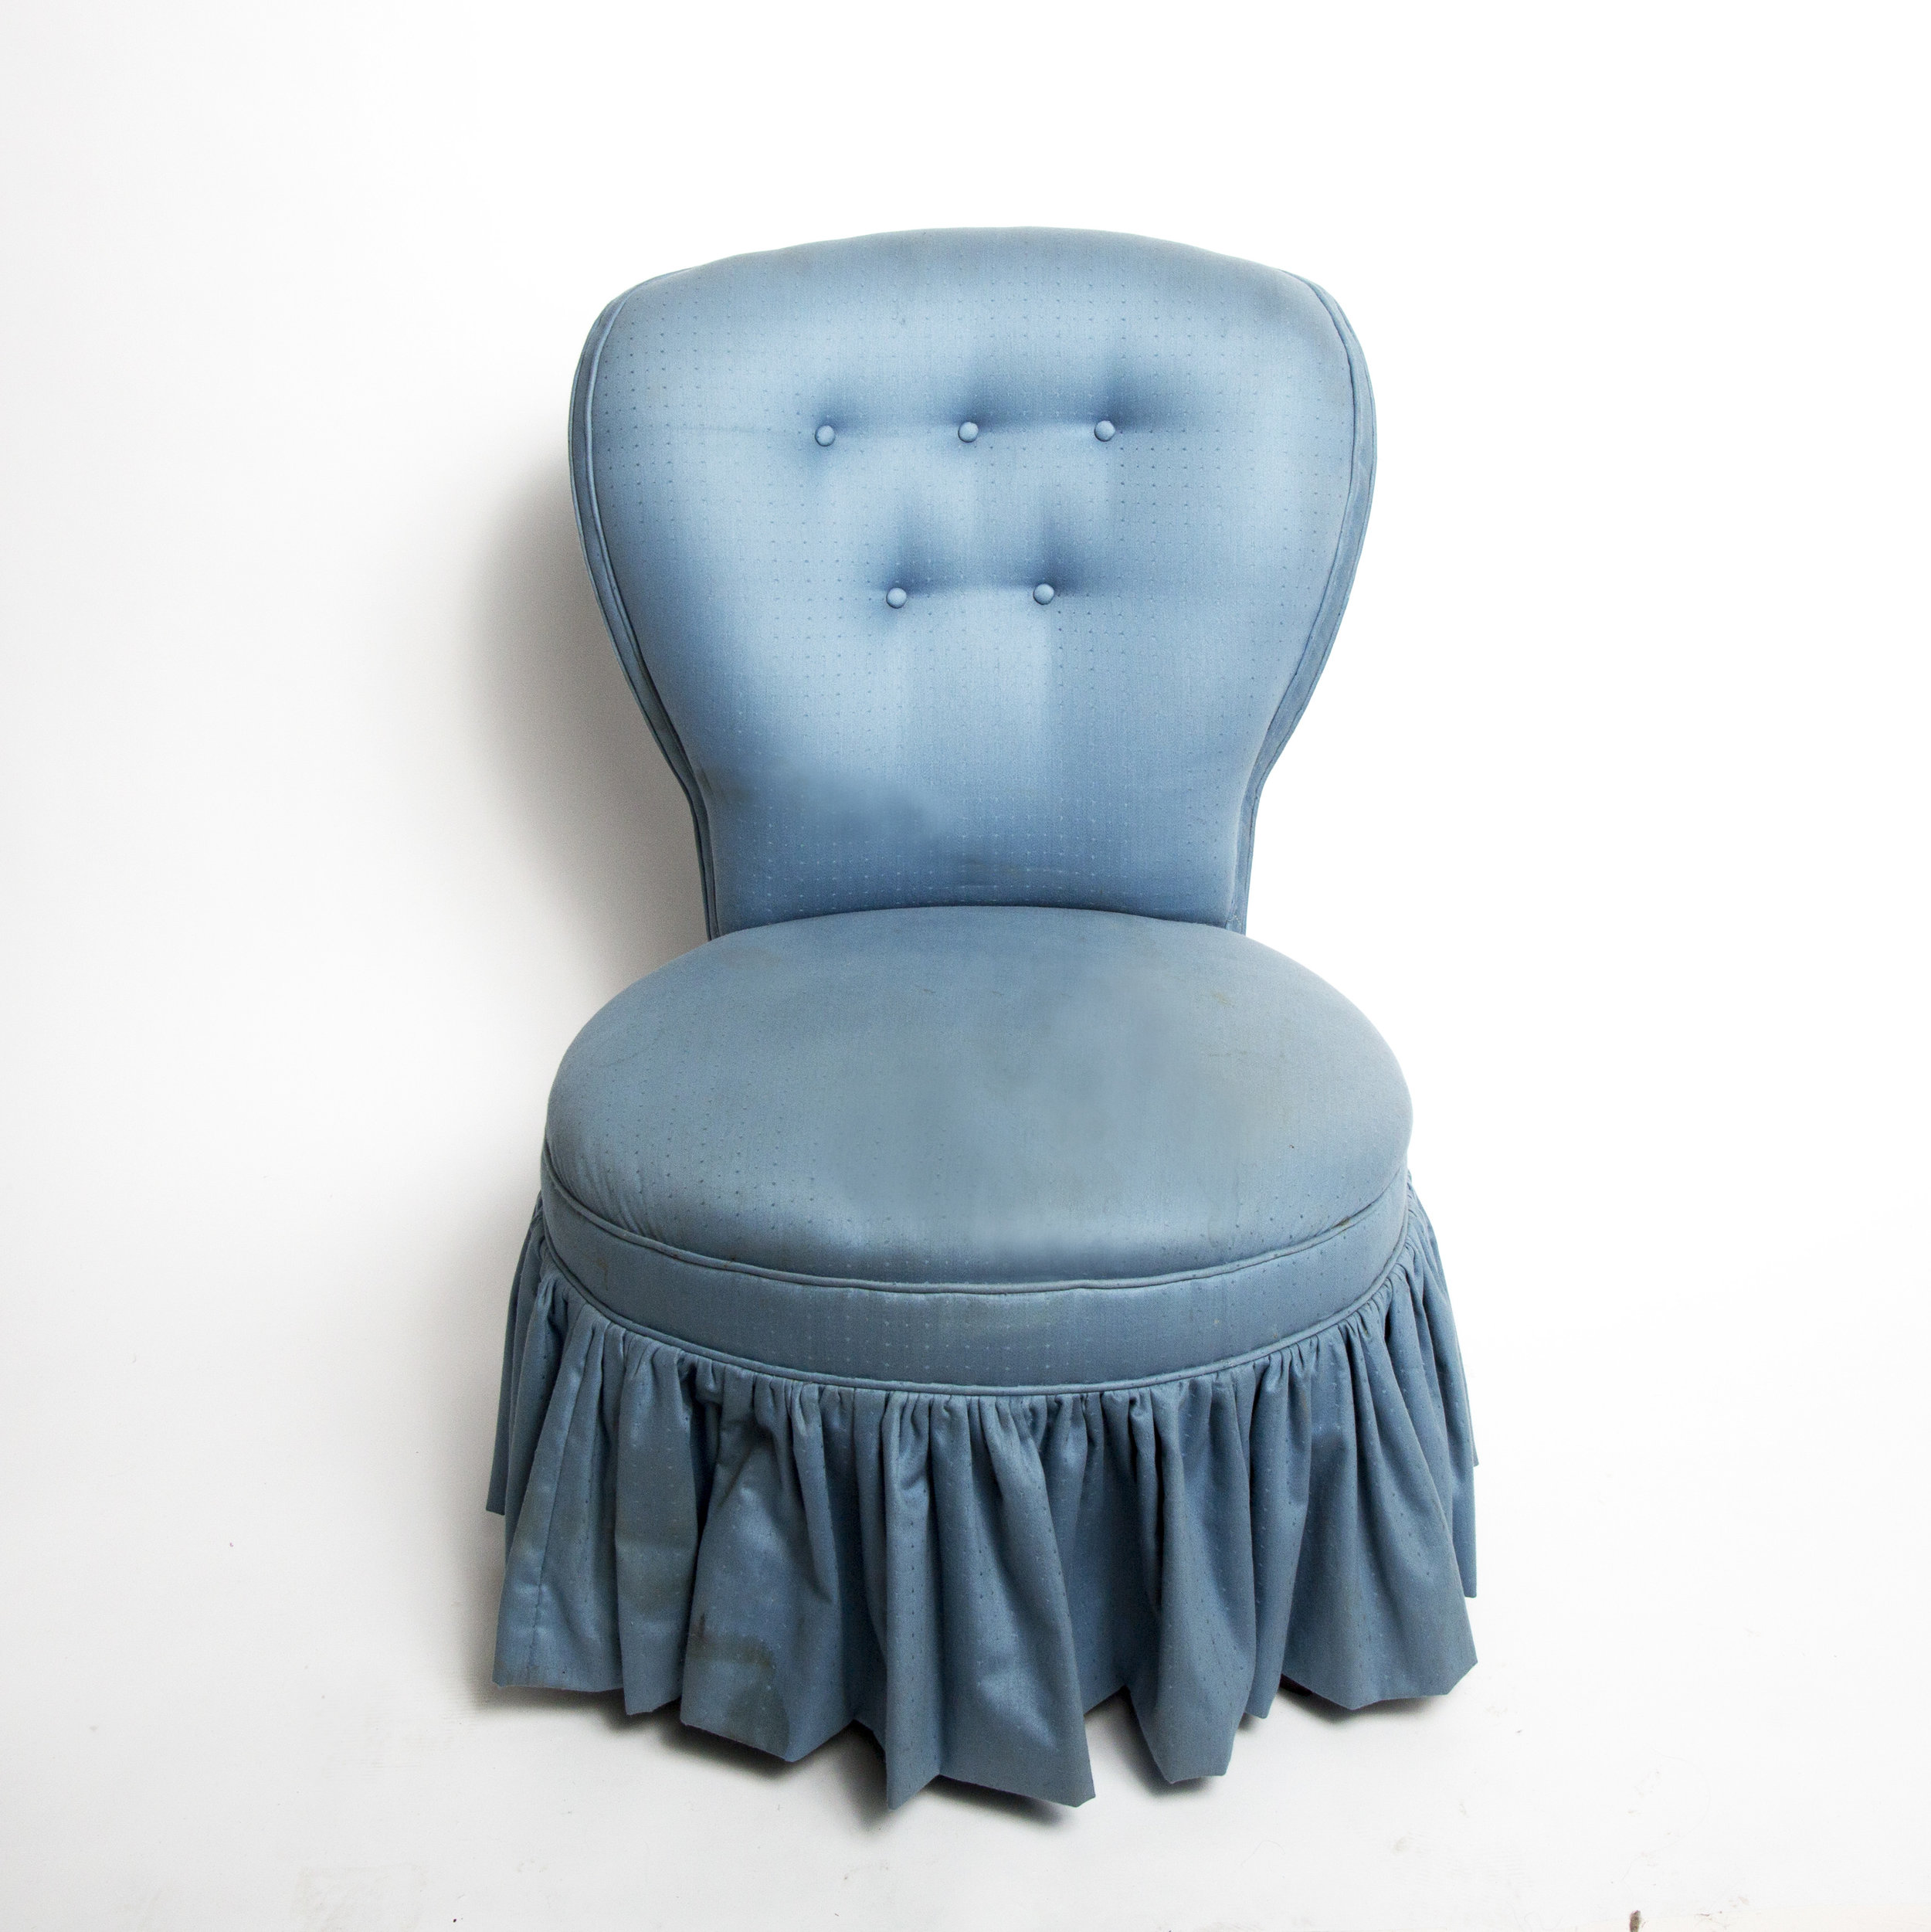 Blue Vintage Style Chair